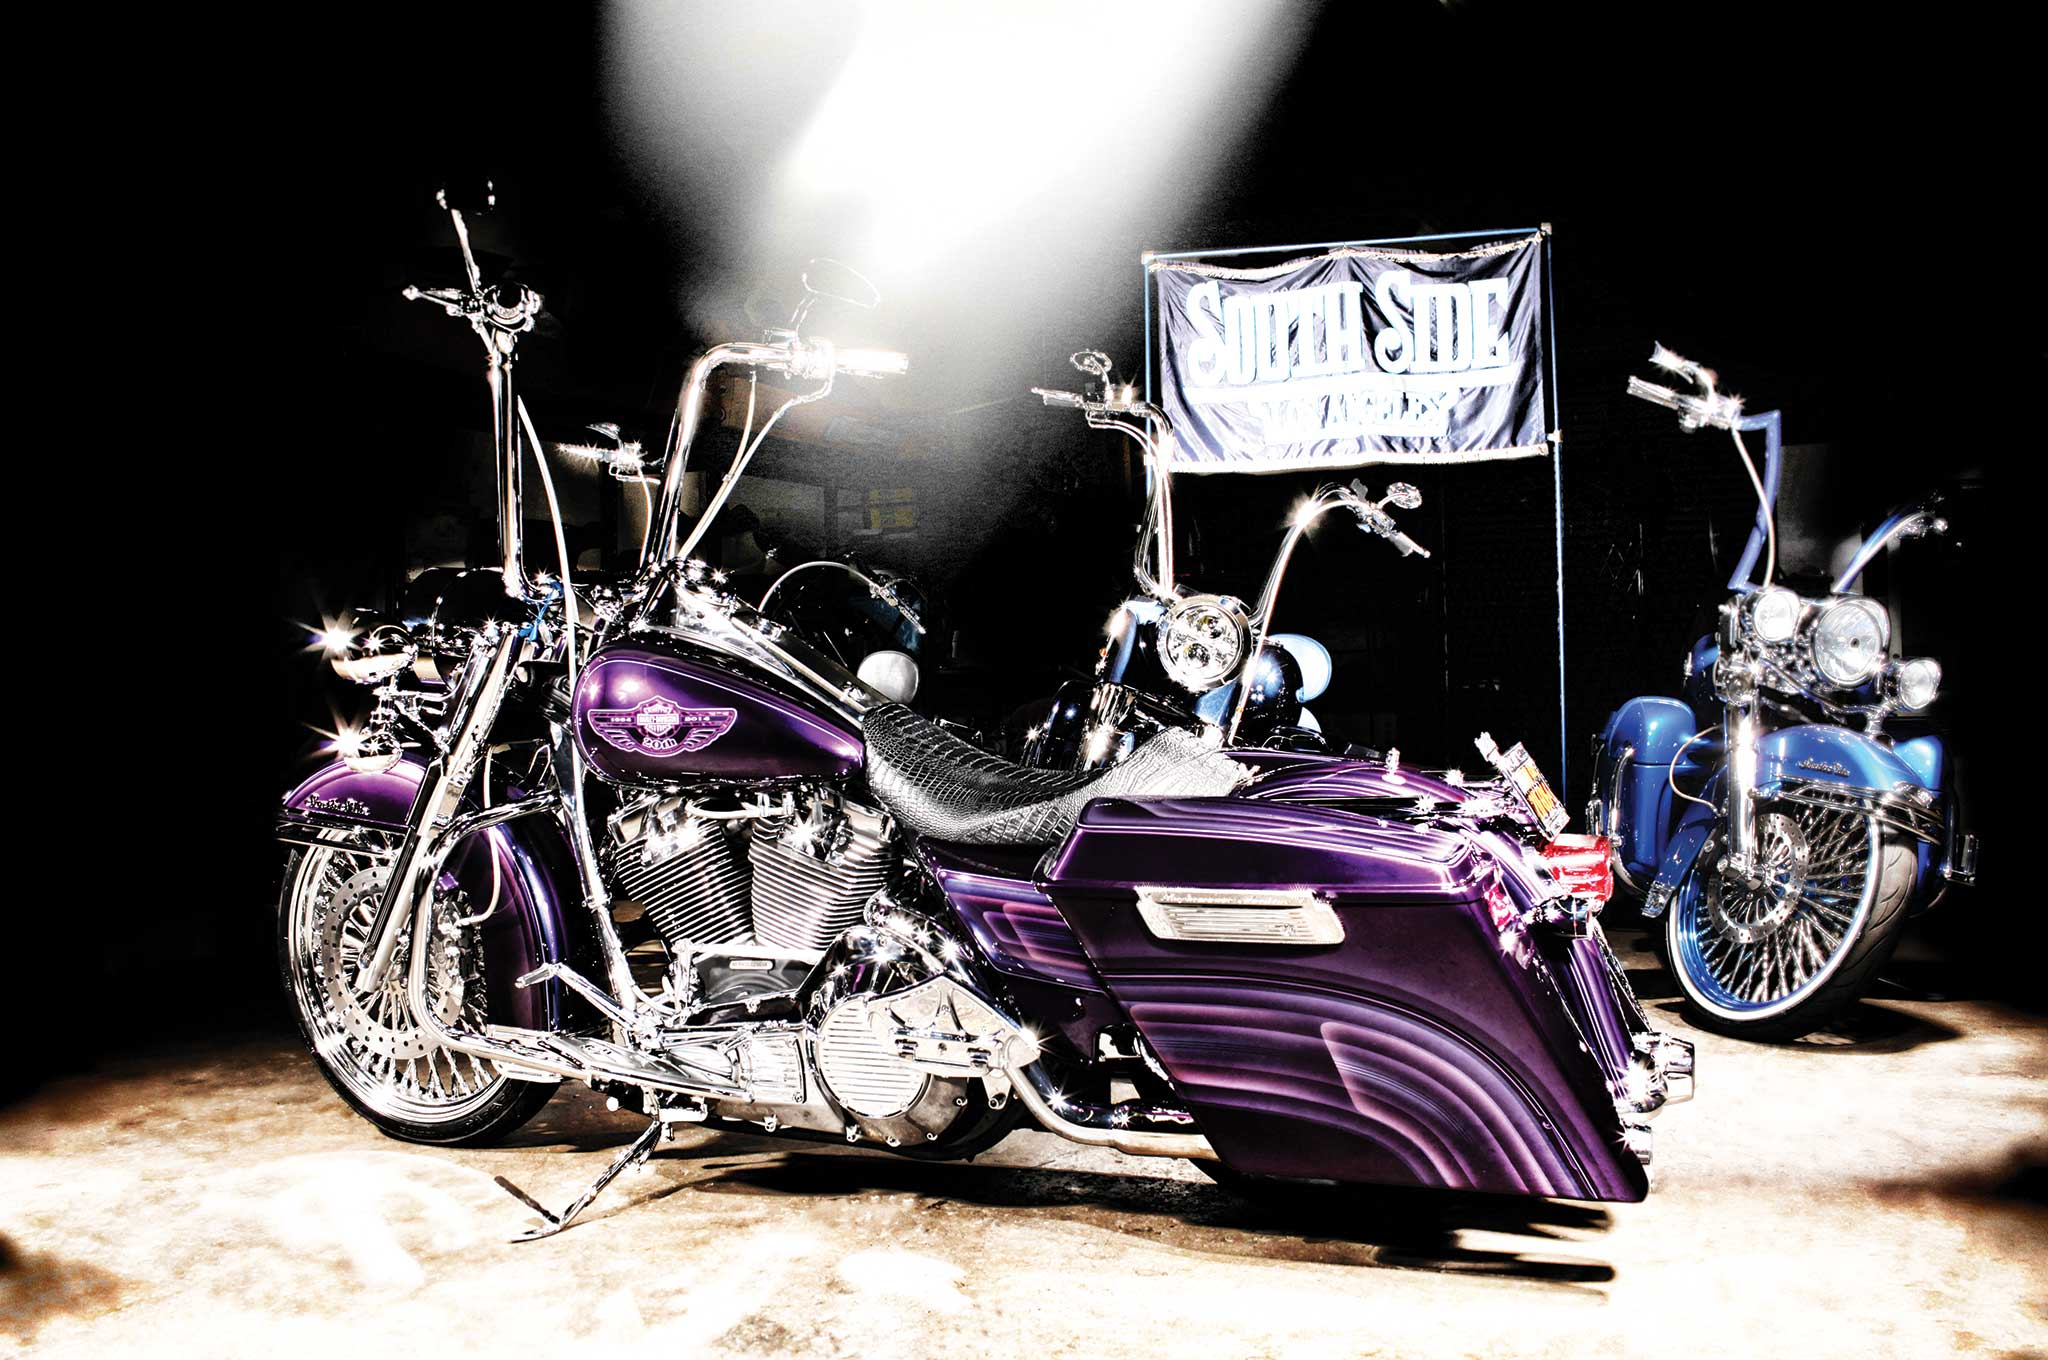 2001 Harley Davidson Road King Mando Lowrider 2 14 Pictures